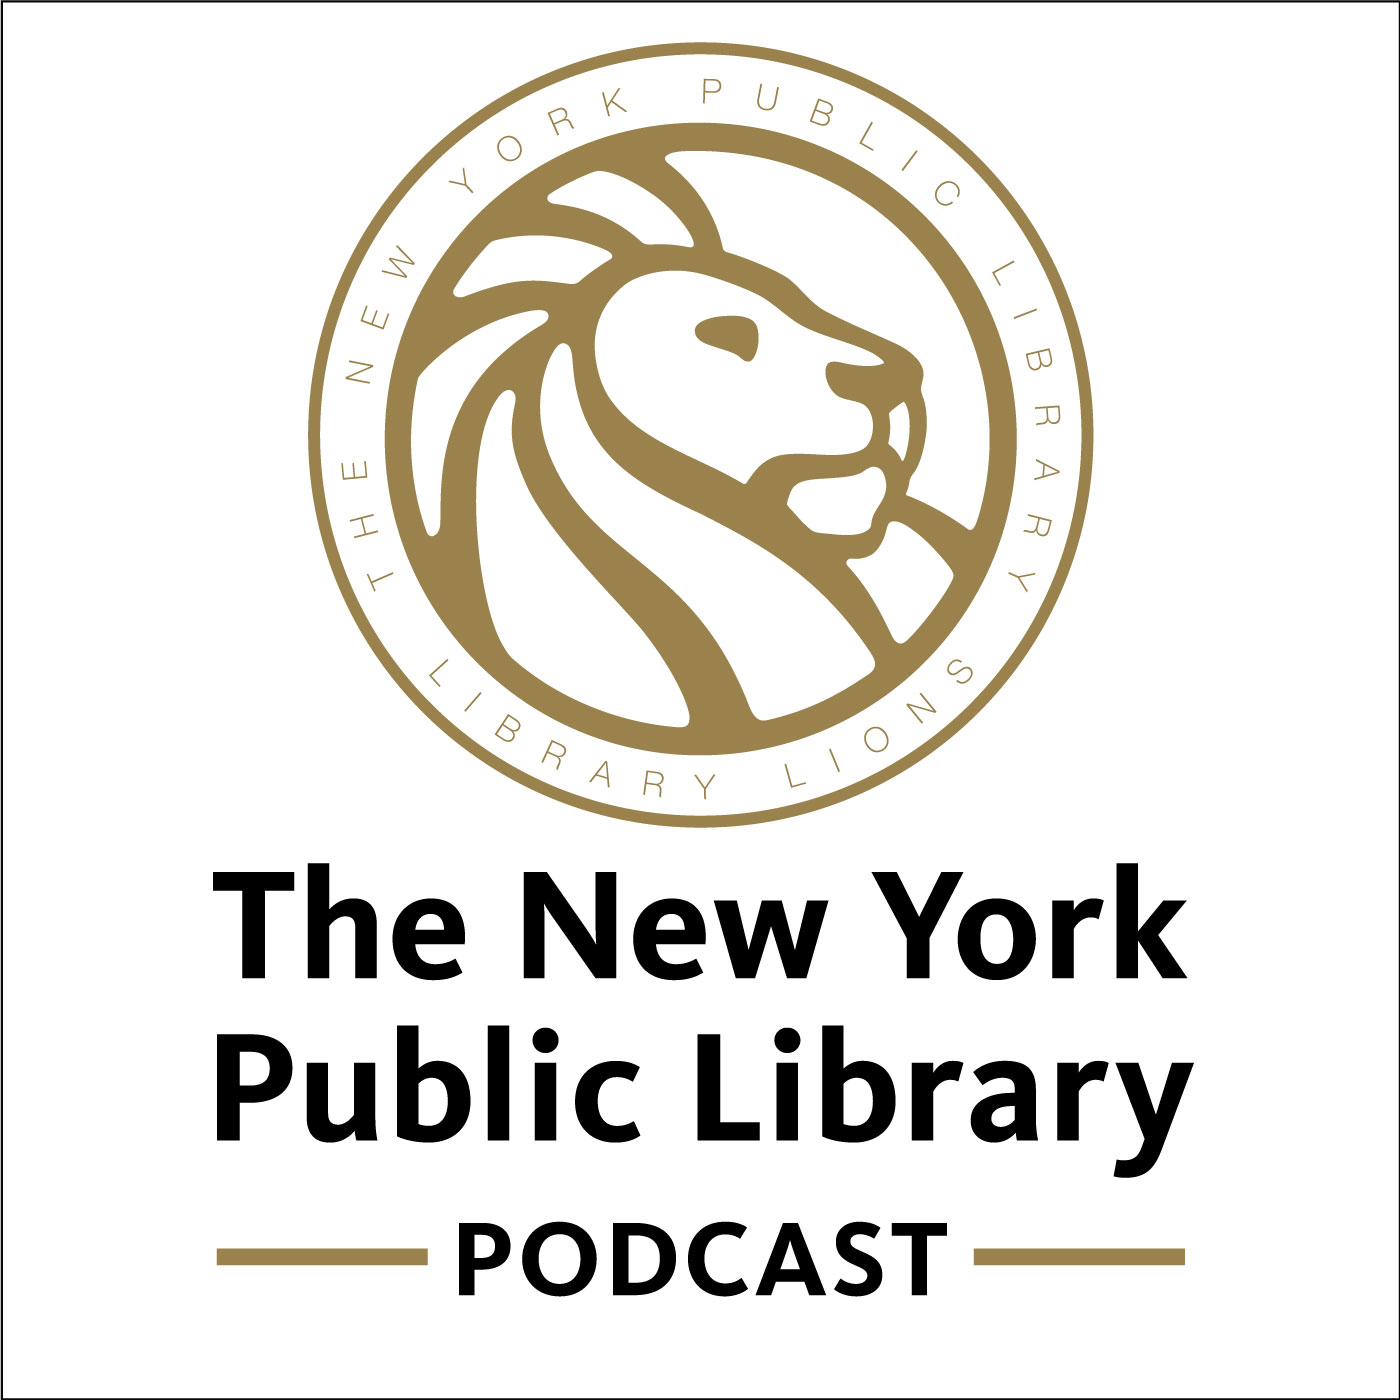 The 2015 Library Lions on Truth & Inspiration